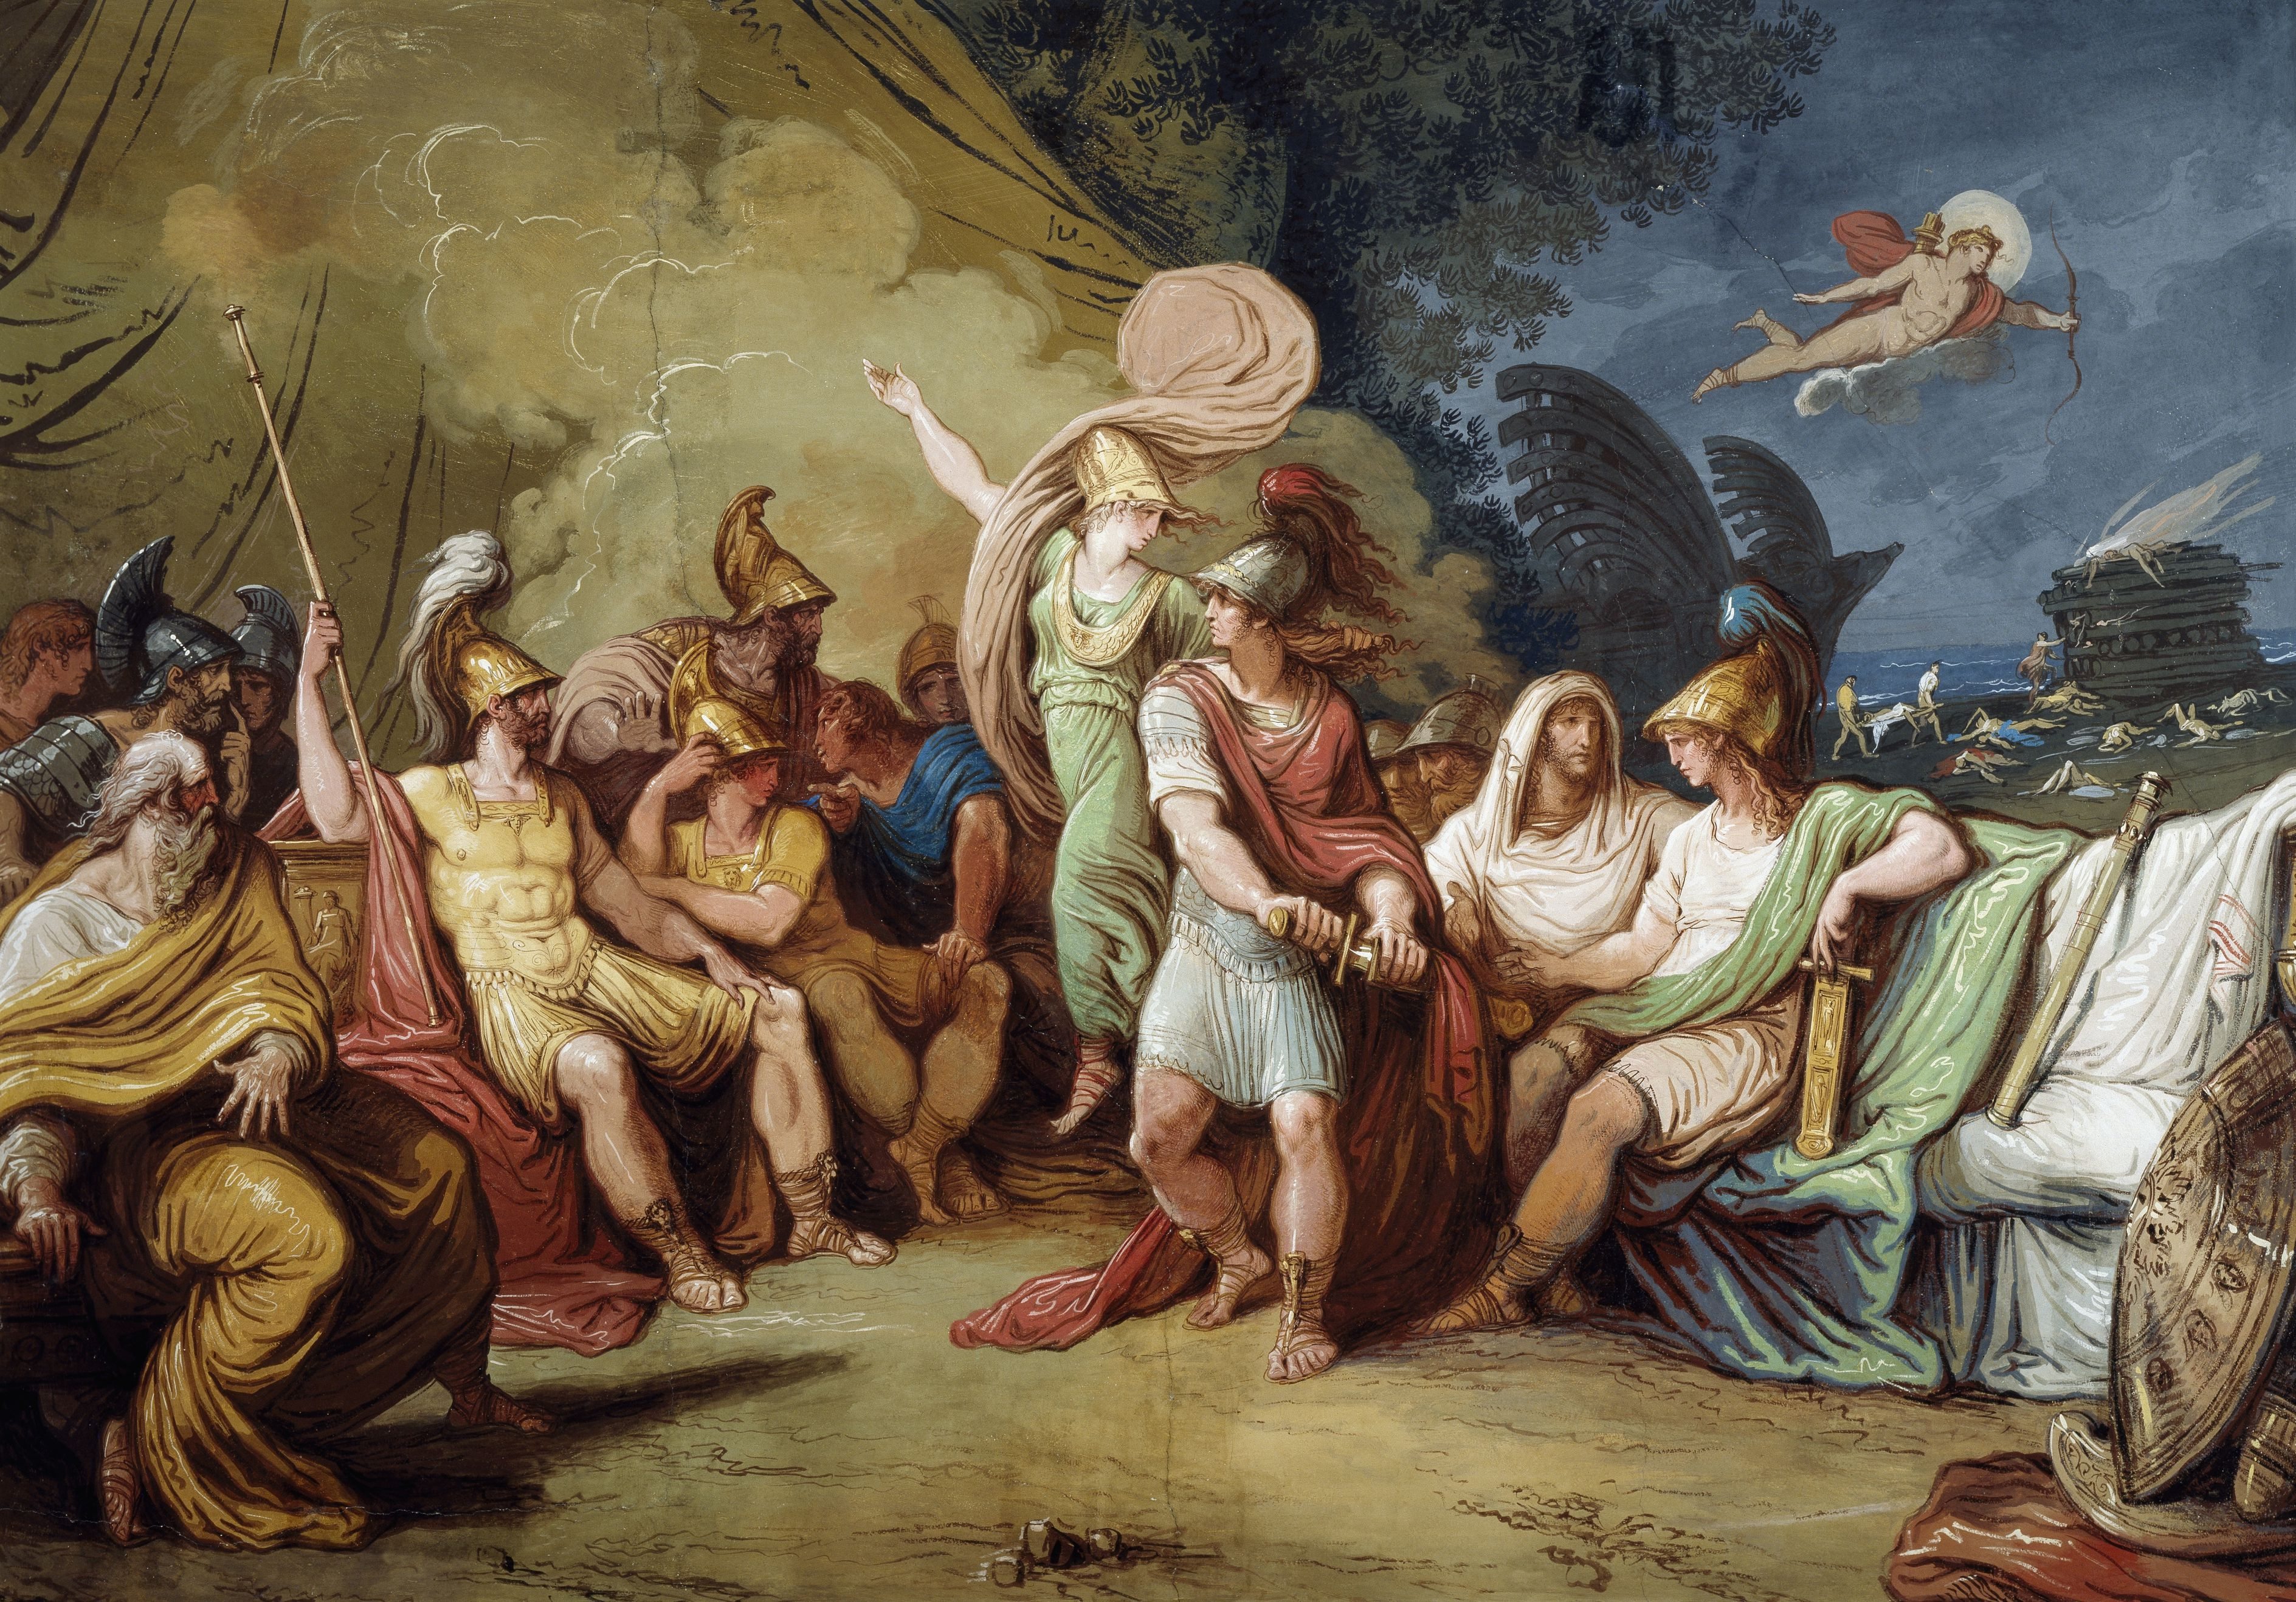 a plot summary of the film iphigenia Iphigenia was the daughter of agamemnon and clytemnestra in greek mythology while the greek army was preparing to set sail for troy during the trojan war , agamemnon caused the anger of the goddess artemis , because he killed a sacred deer.